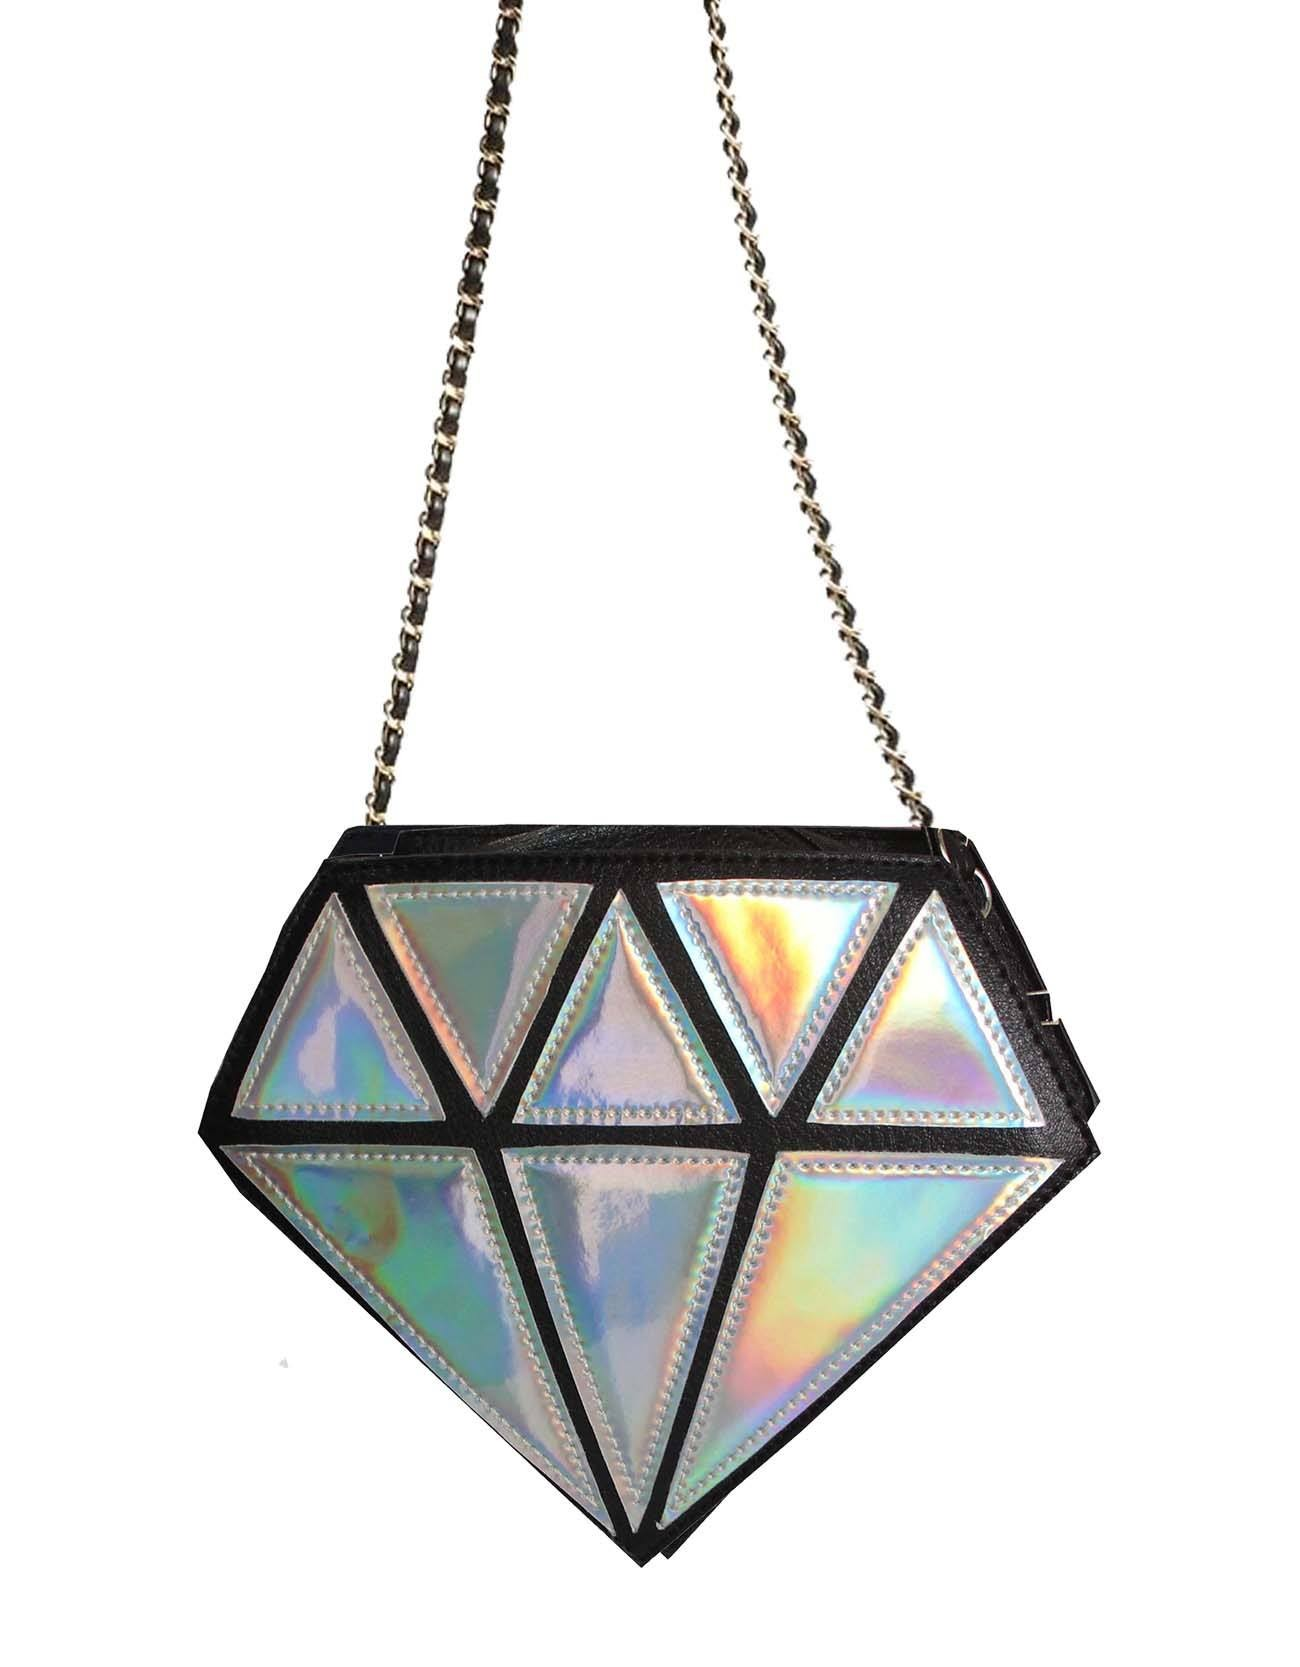 Diamond Crossbody Statement Bag